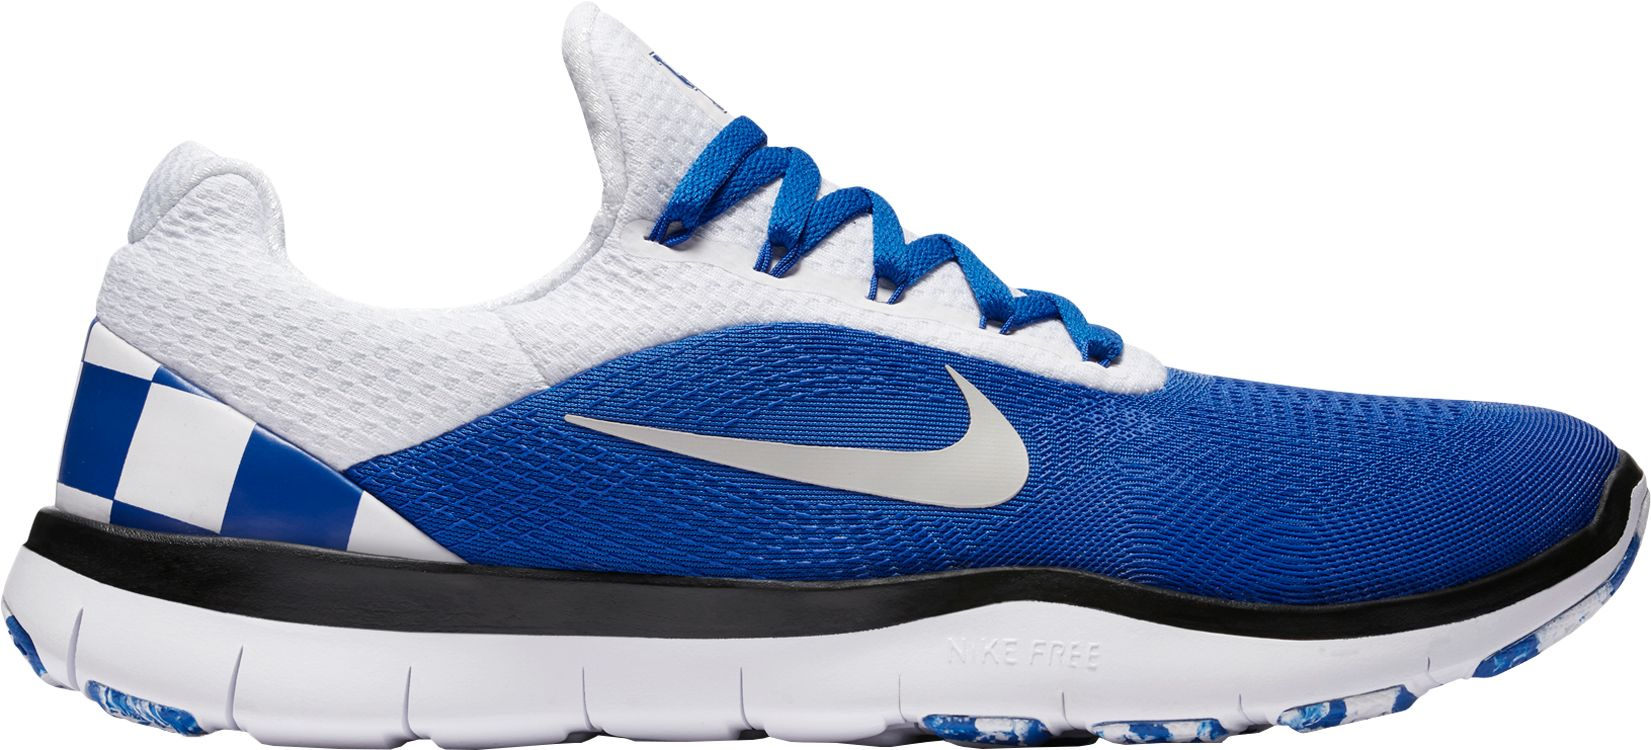 Nike Men's Free Trainer V7 Week Zero Kentucky Edition Training Shoes |  DICK'S Sporting Goods